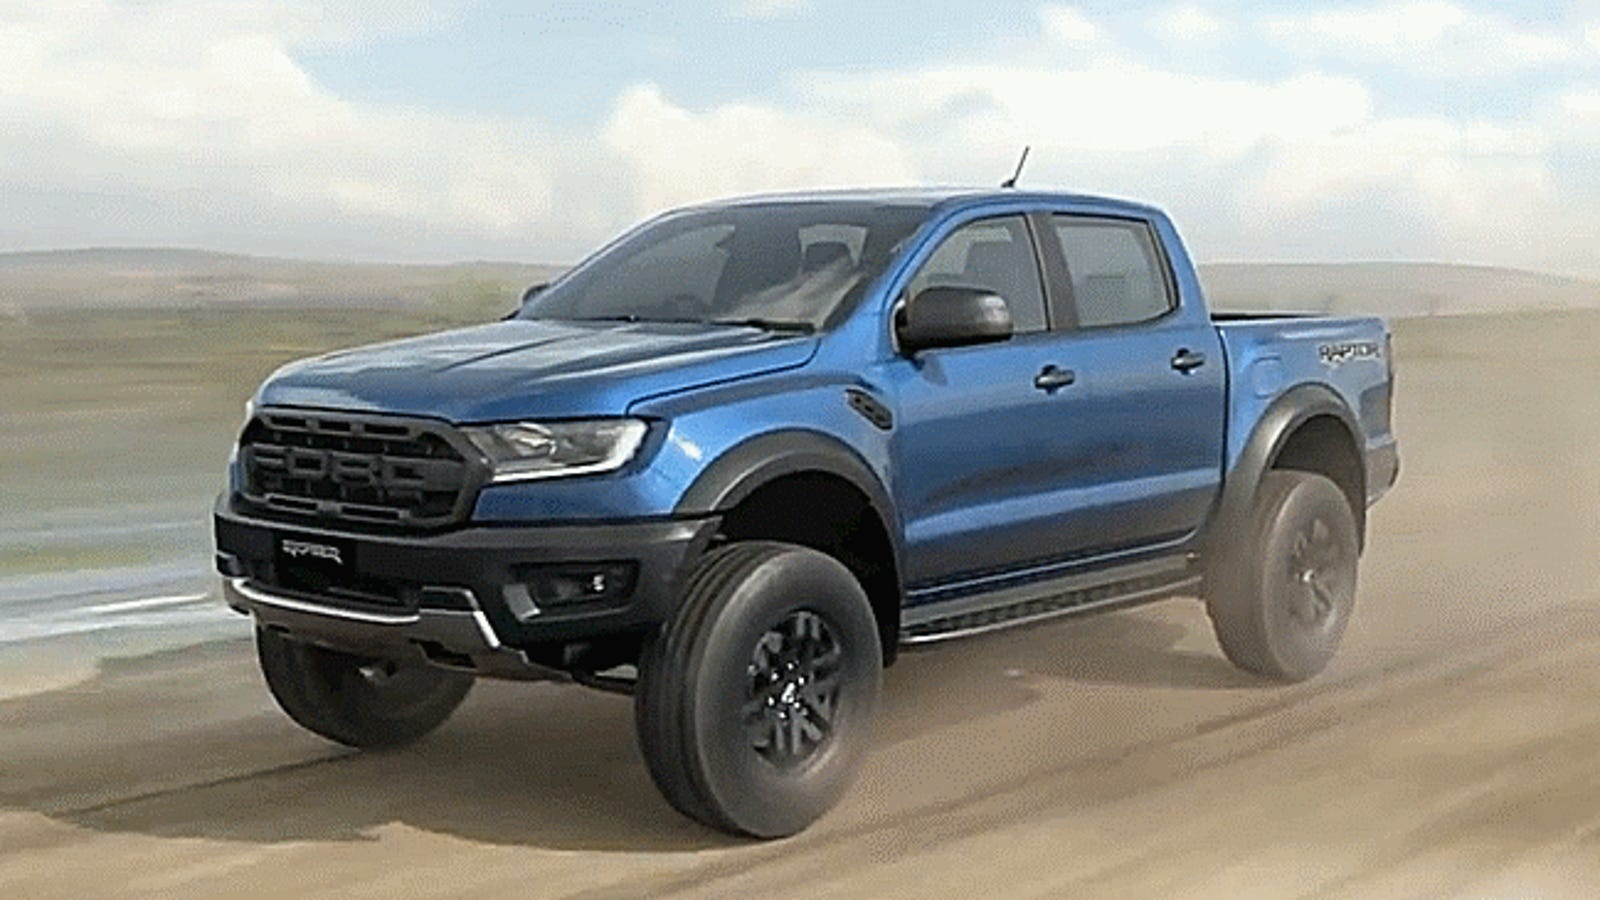 See Inside The 2019 Ford Ranger Raptor With This Cool Cutaway